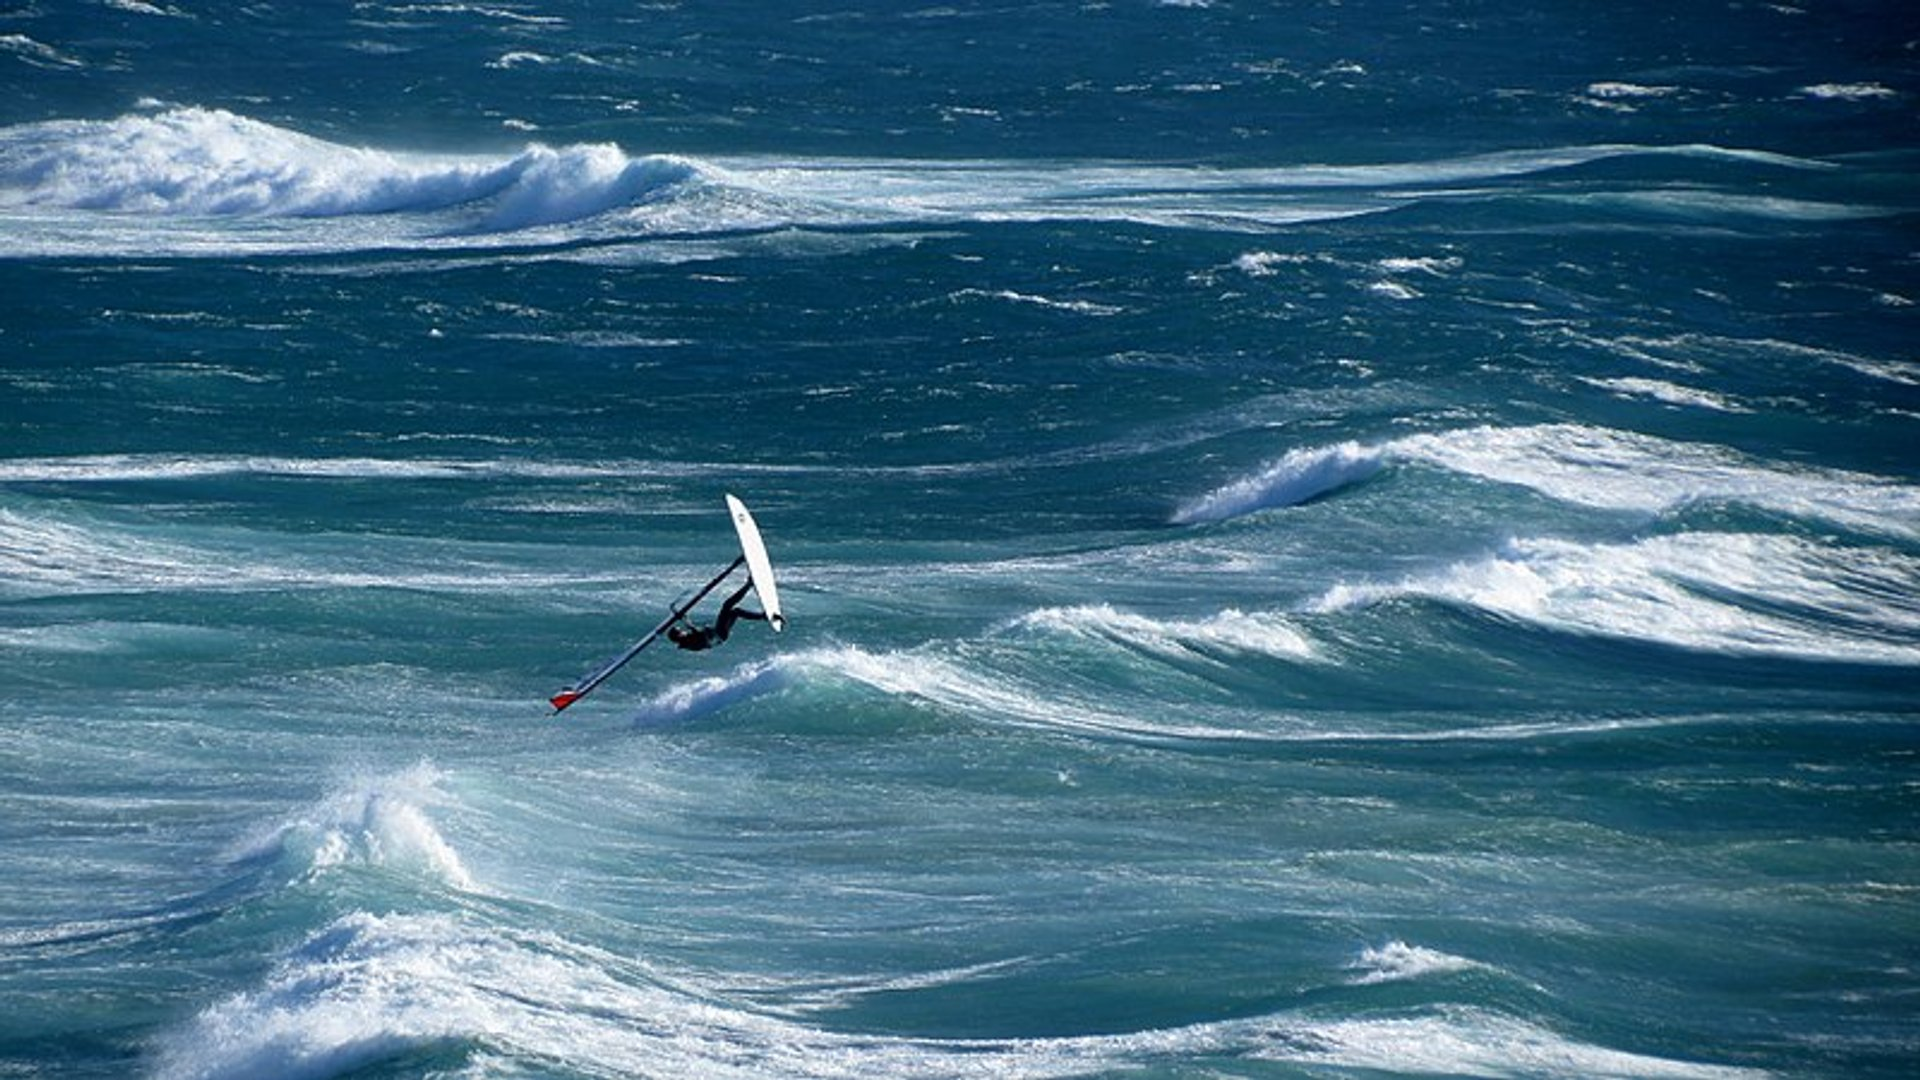 Kitesurfing and Windsurfing in Portugal - Best Season 2020